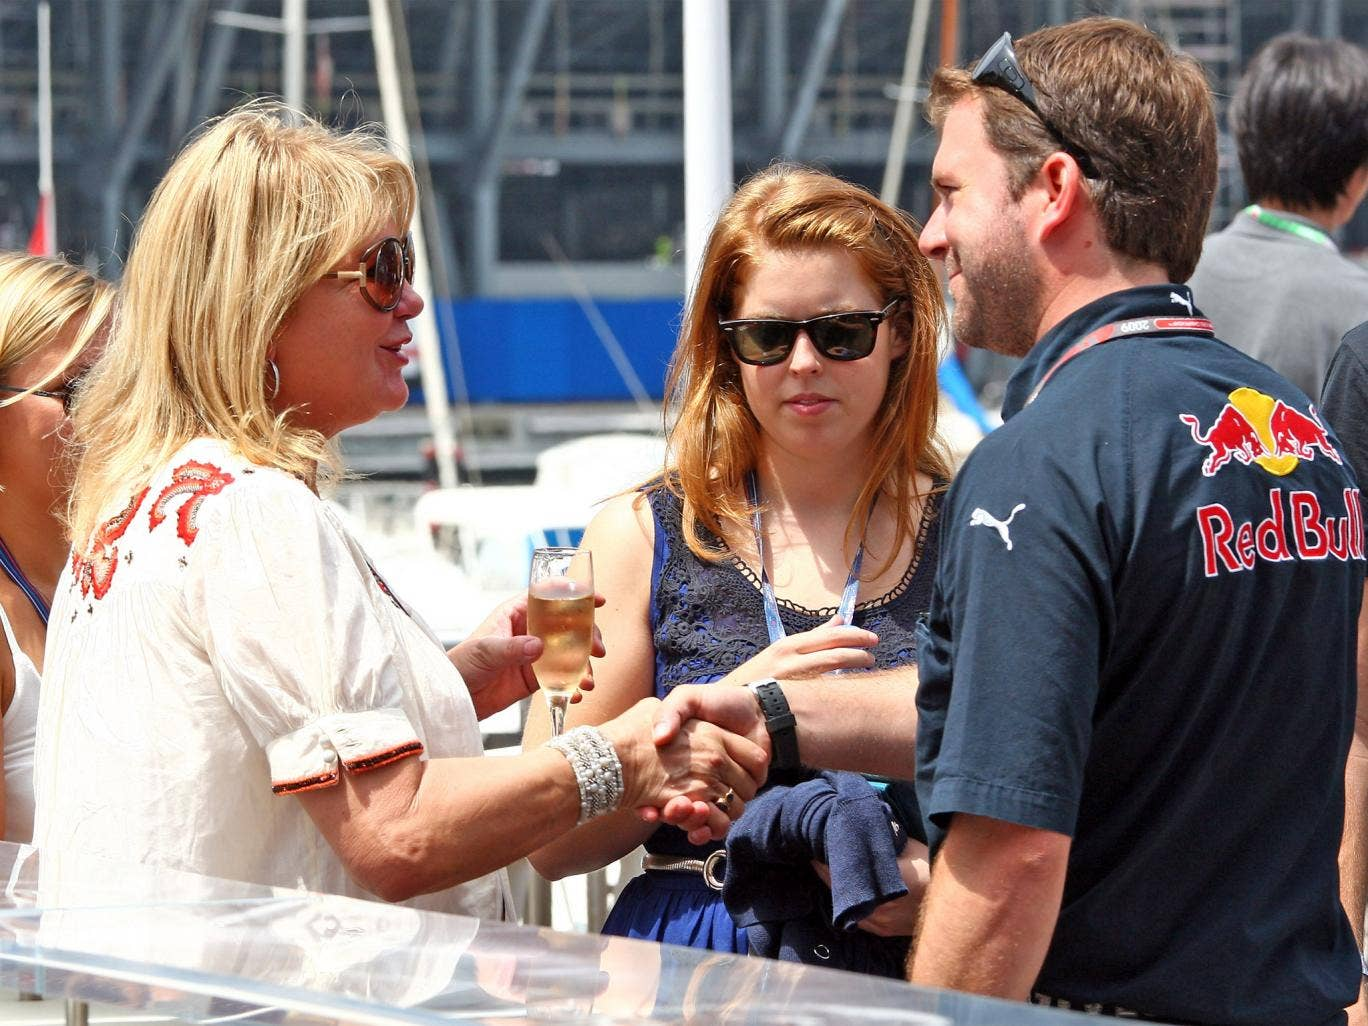 Princess Beatrice, centre, visits Red Bull's F1 team